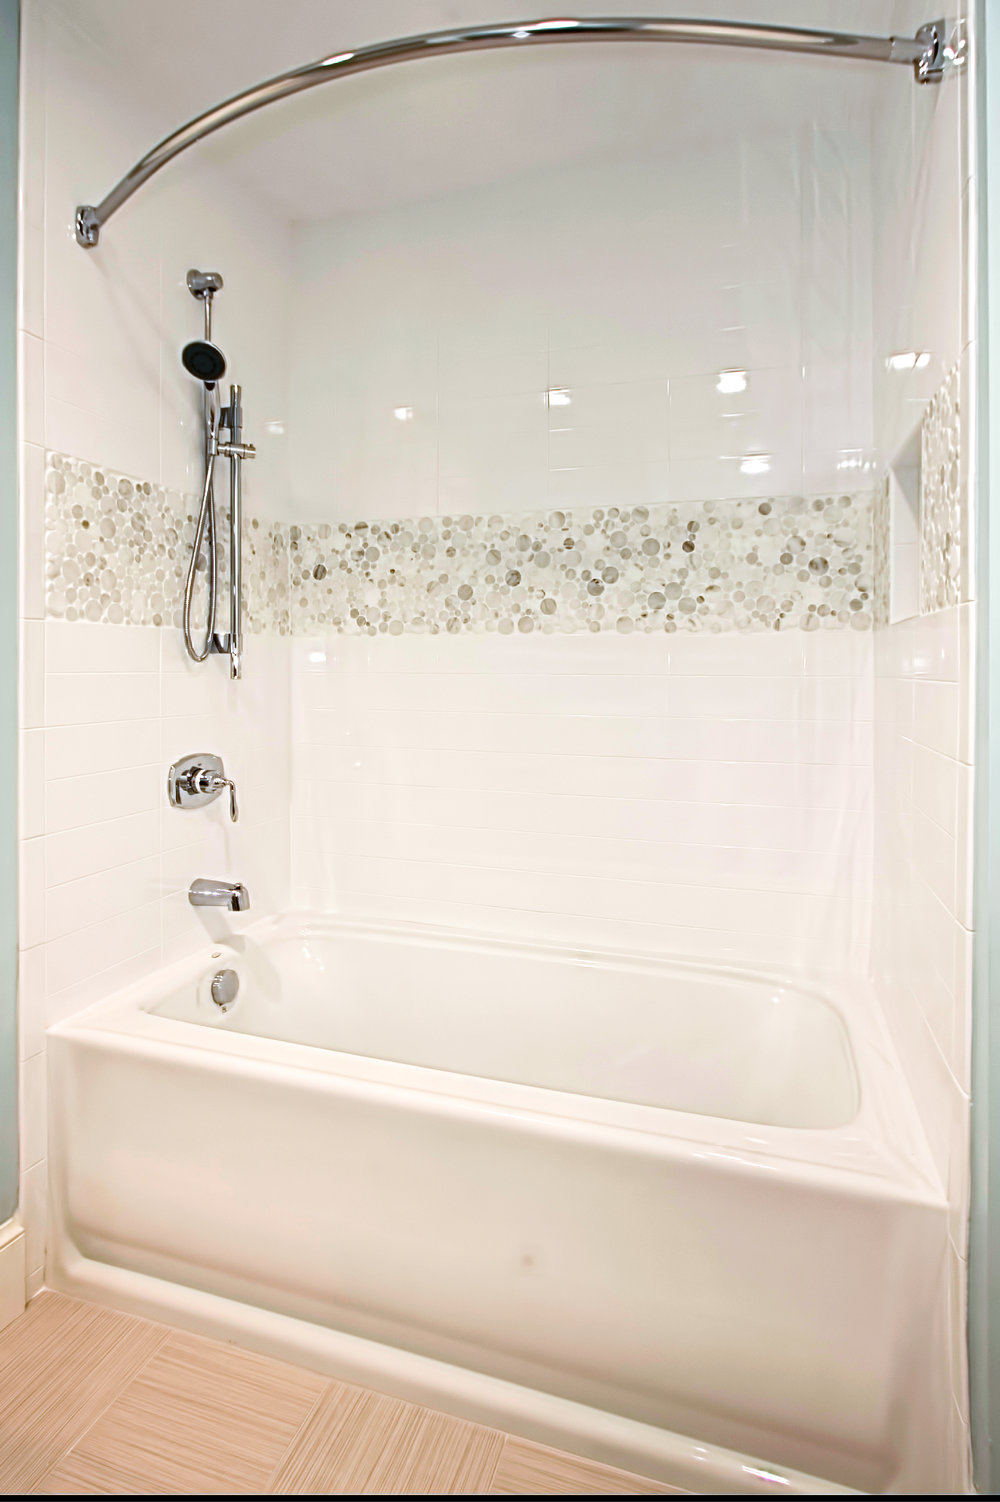 1886 Virginia Ave. - Kids Bathtub.jpg